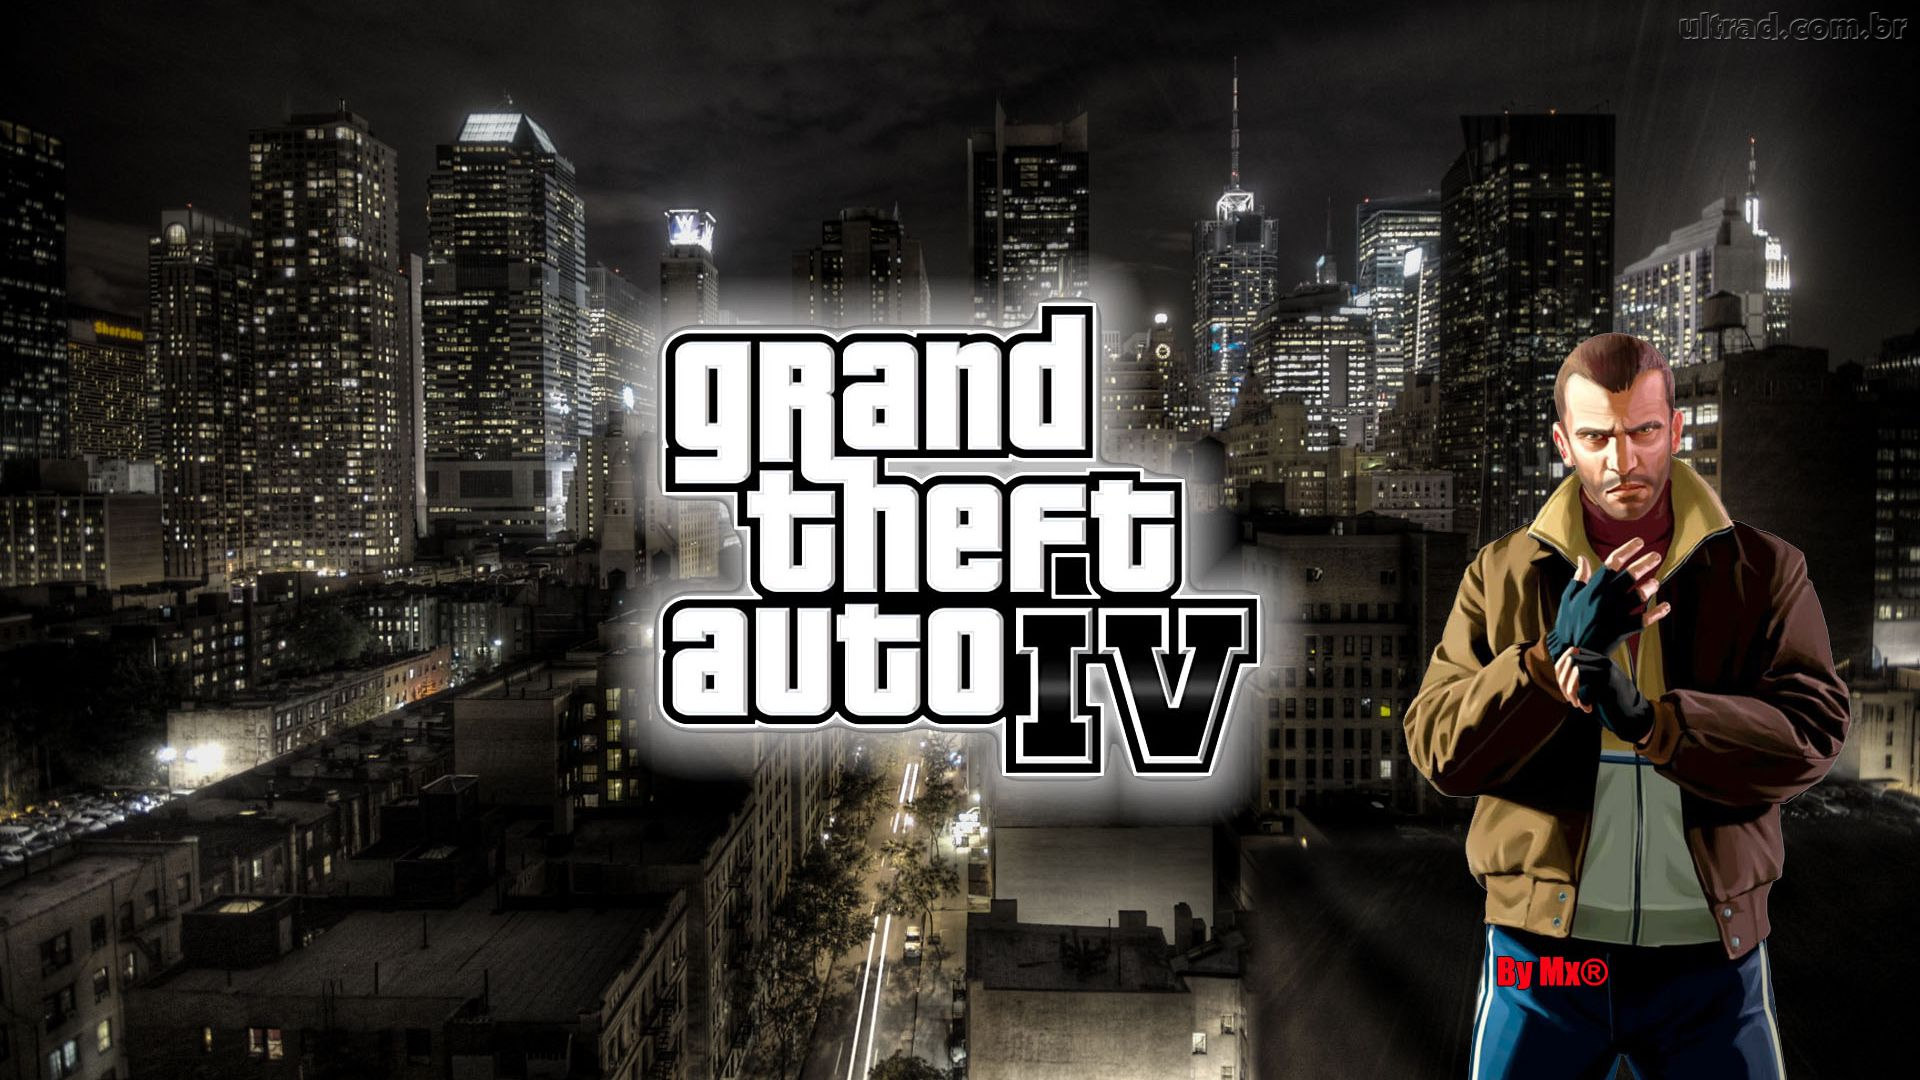 GTA Grand Theft Auto 4 full Version Download | Softrocky